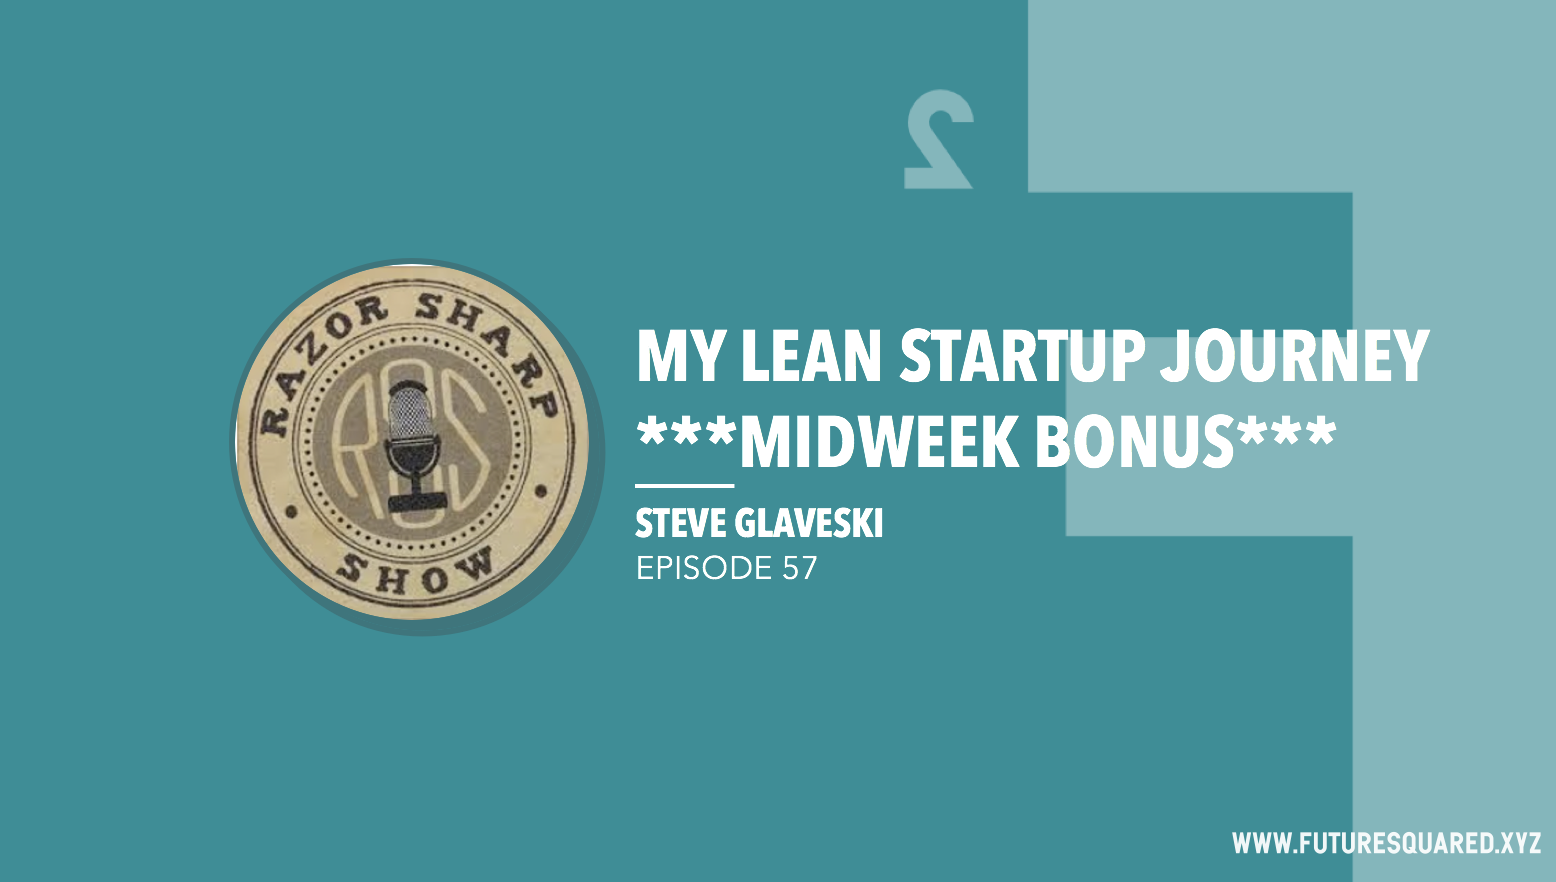 Future Squared Episode #57: My Lean Startup Journey *midweek bonus*